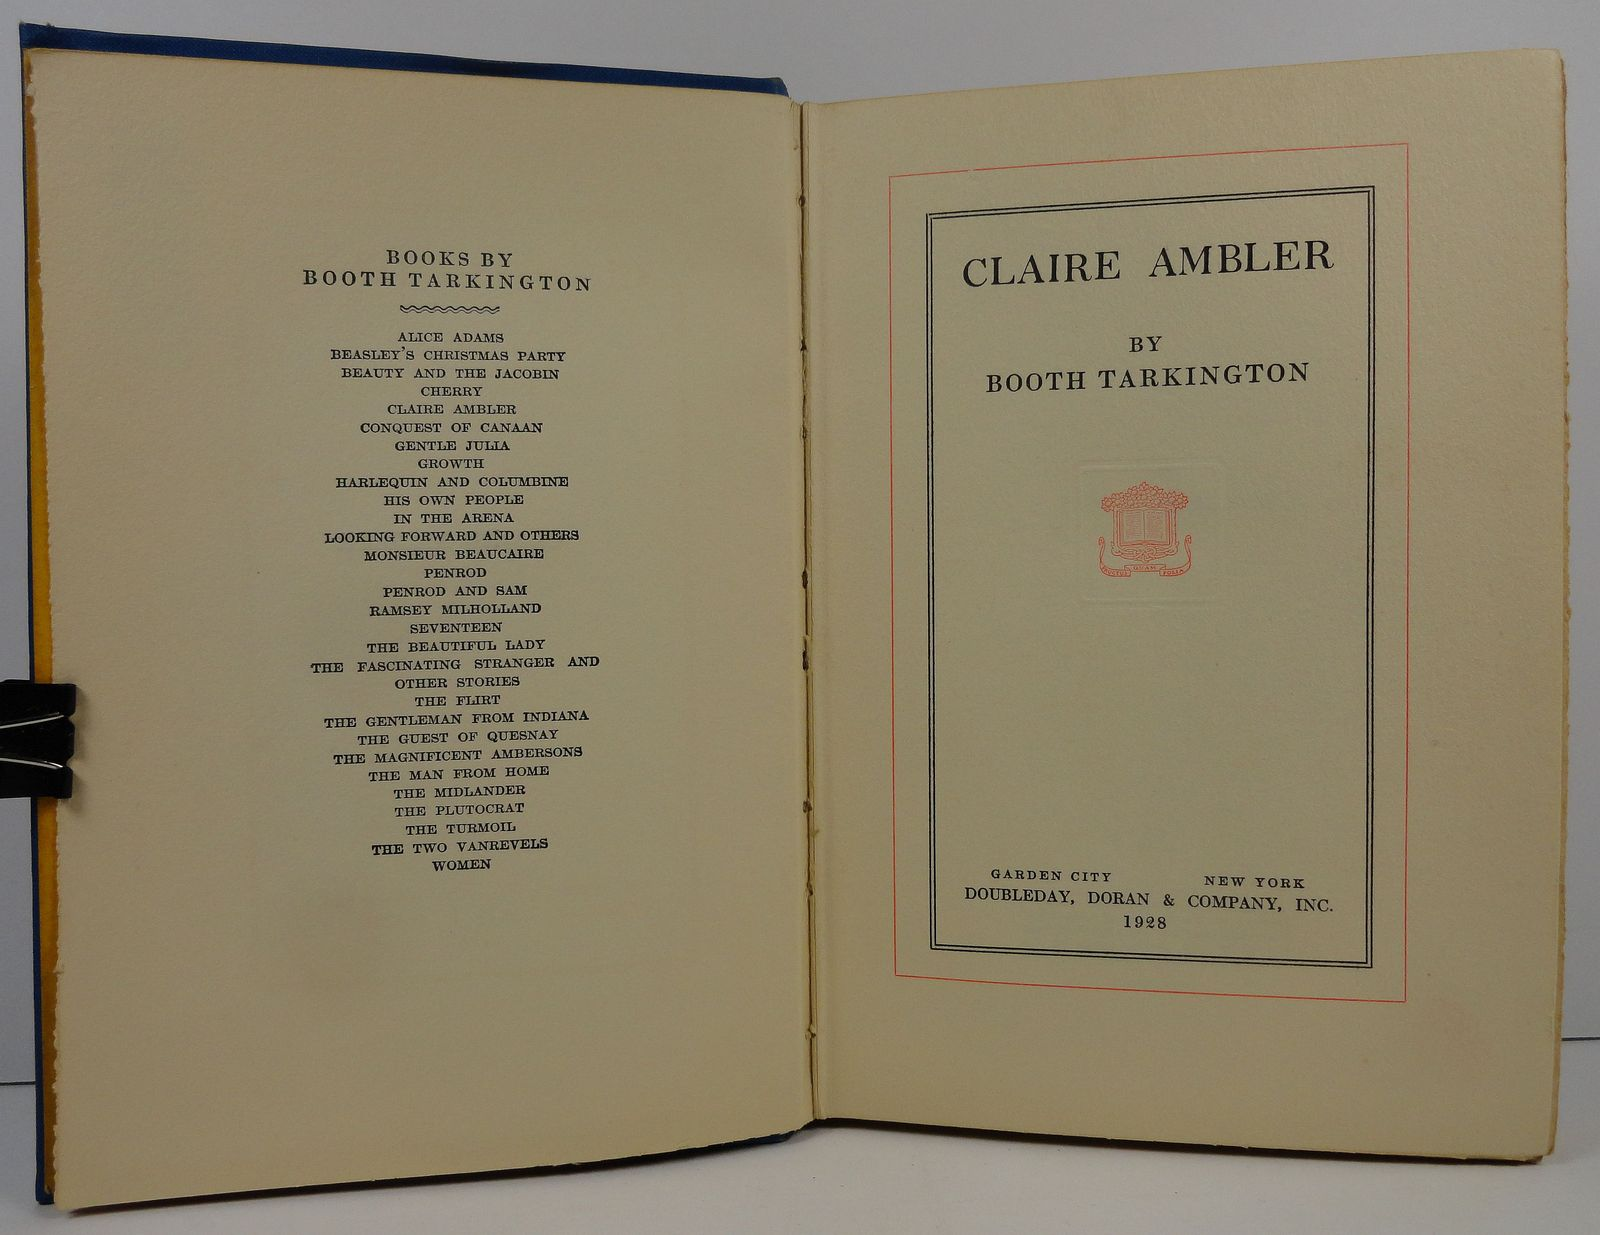 Claire Ambler by Booth Tarkington 1928 Doubleday, Doran